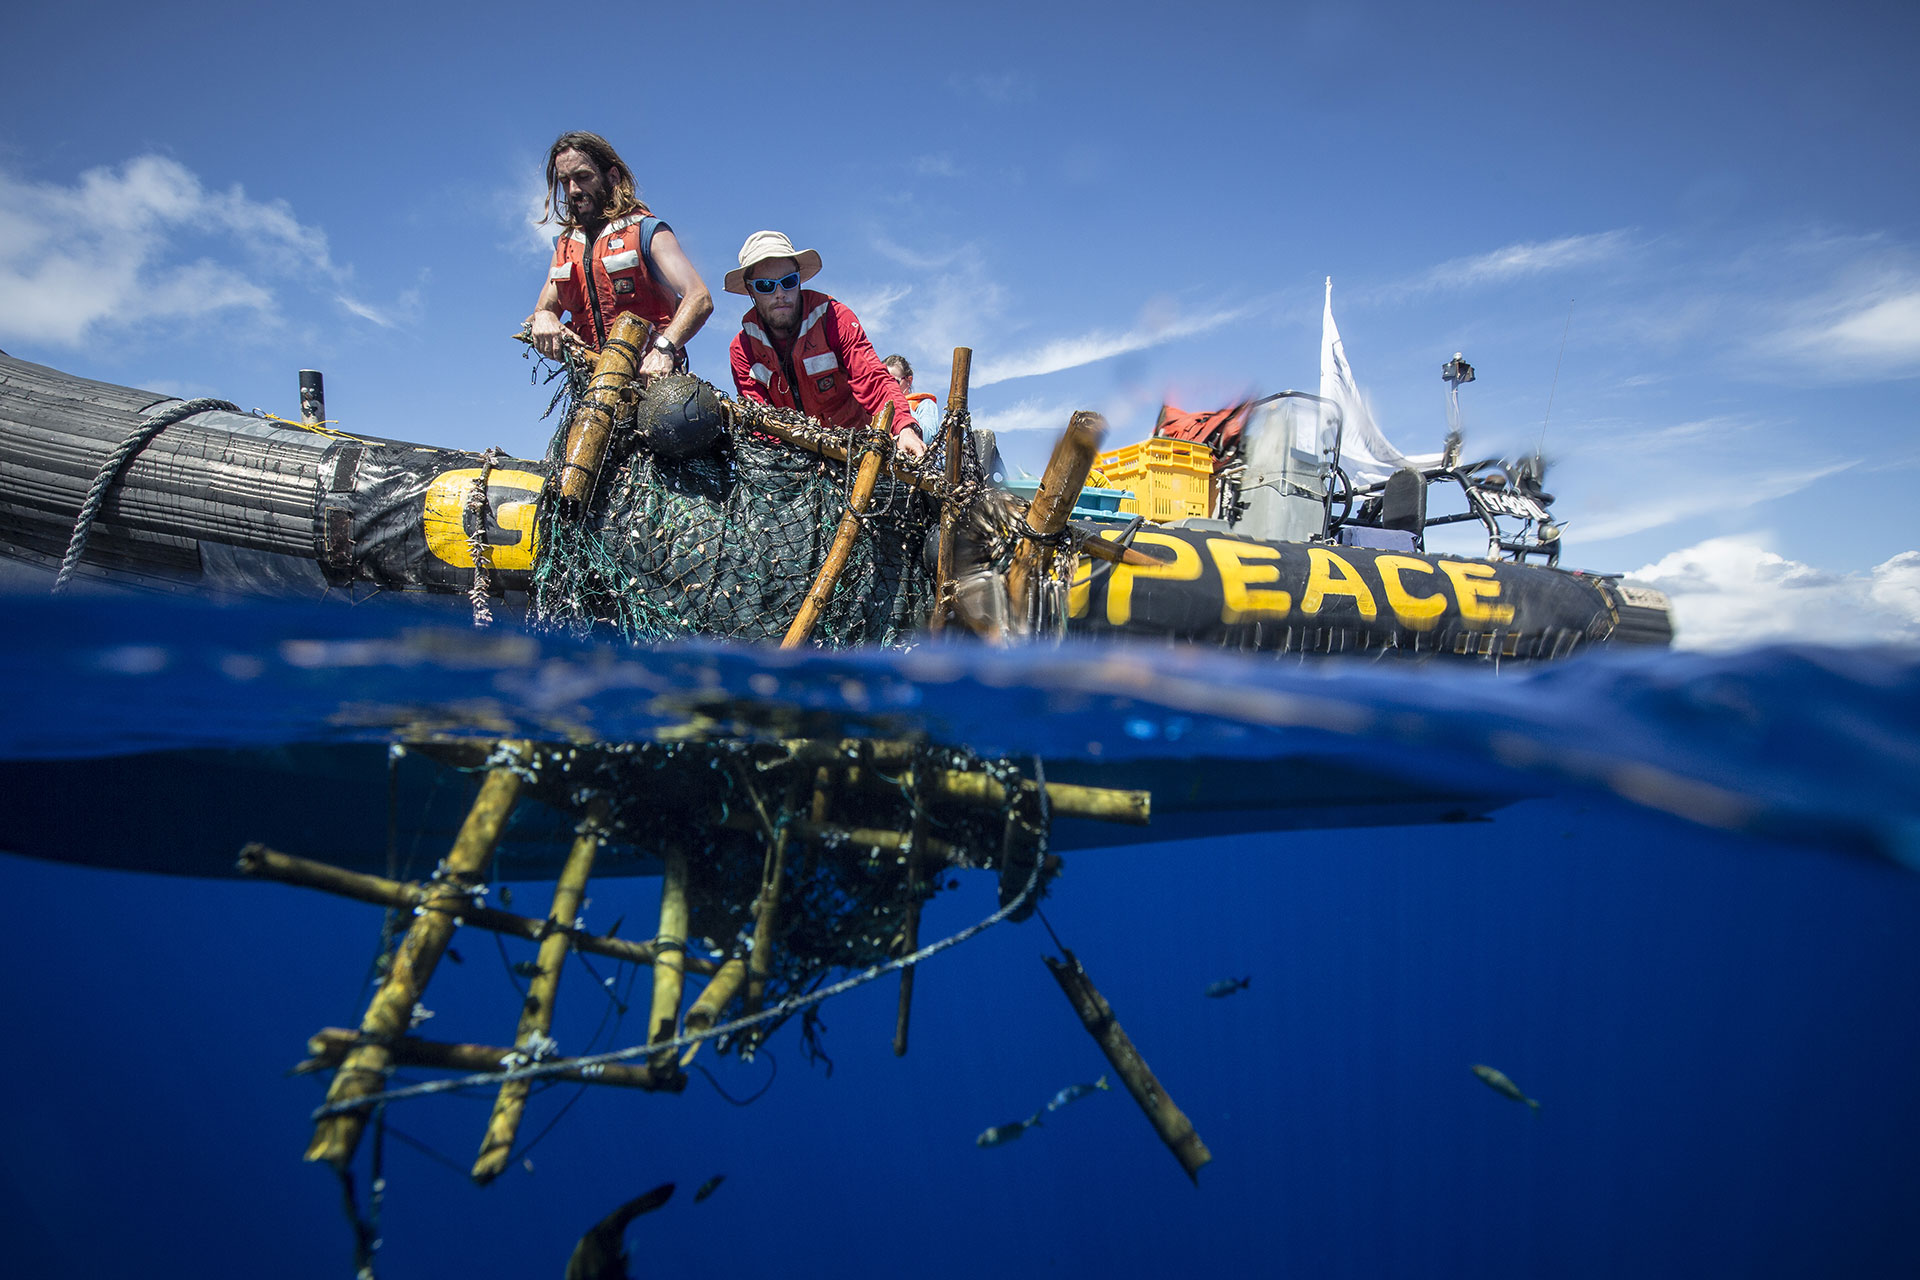 Documenting FADs in the Indian Ocean. © Will Rose / Greenpeace